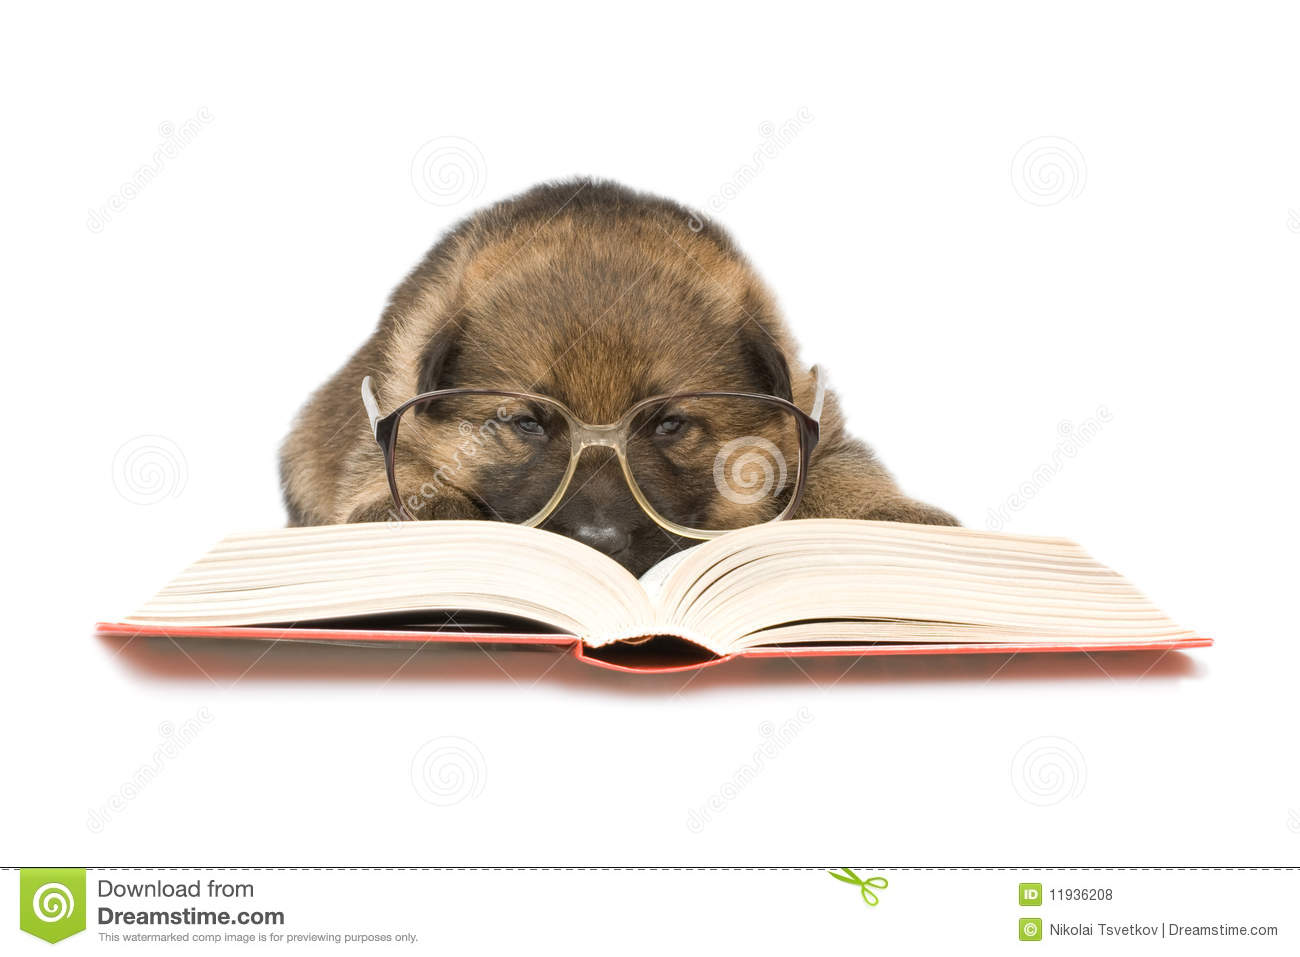 Bookworms: Read These Training Books! |Puppy Reading